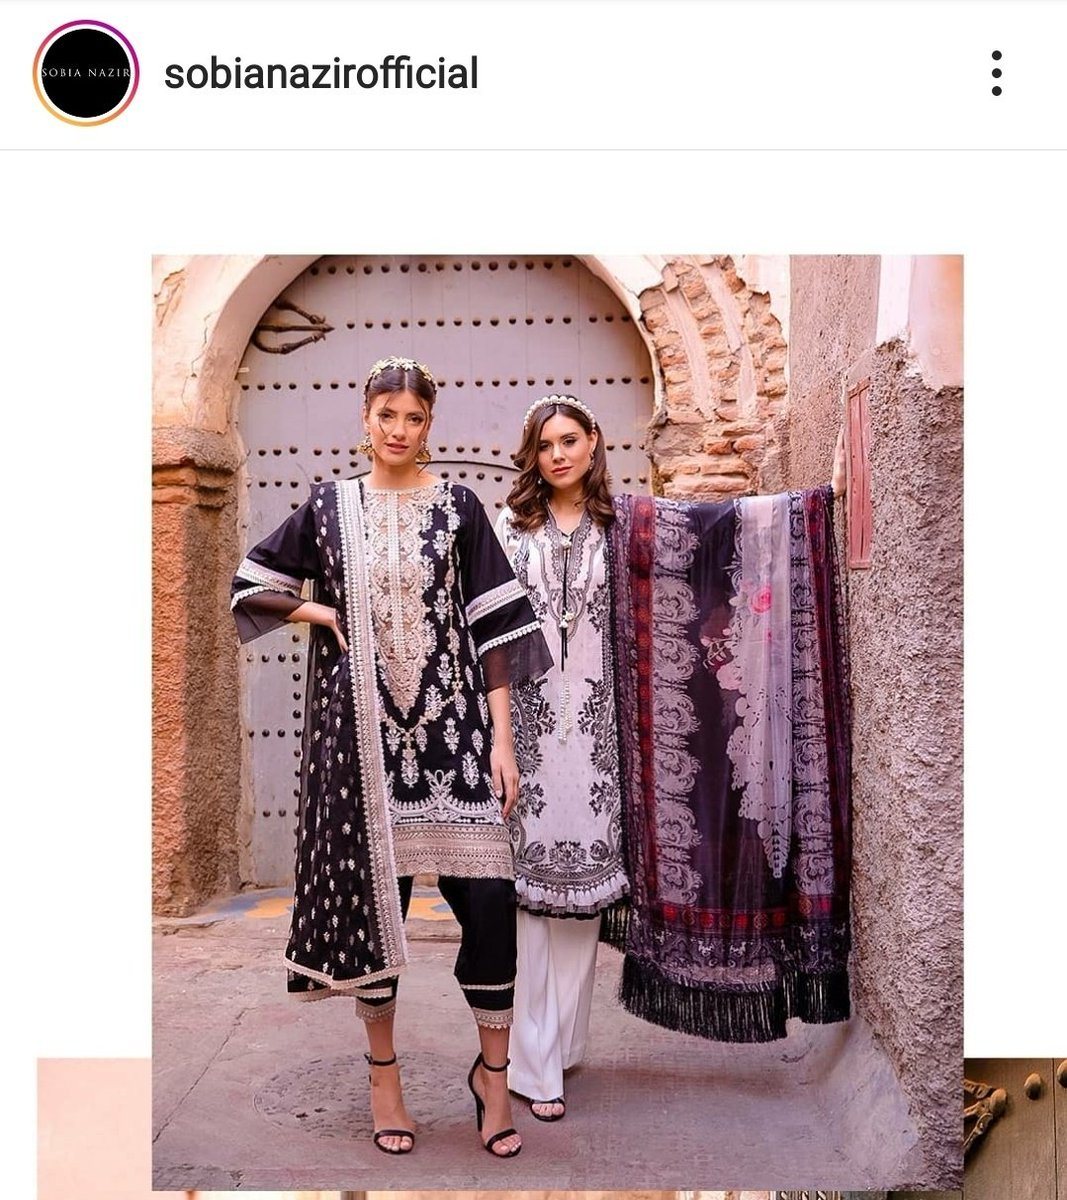 Like many Brit Pakistani young women, every summer I eagerly wait for the lawn campaigns to drop. The prints are bold & the competition is fierce.   But today as I scrolled through the images, in light of everything that's been happening recently, there was something really obv https://t.co/toRNyf8bQk